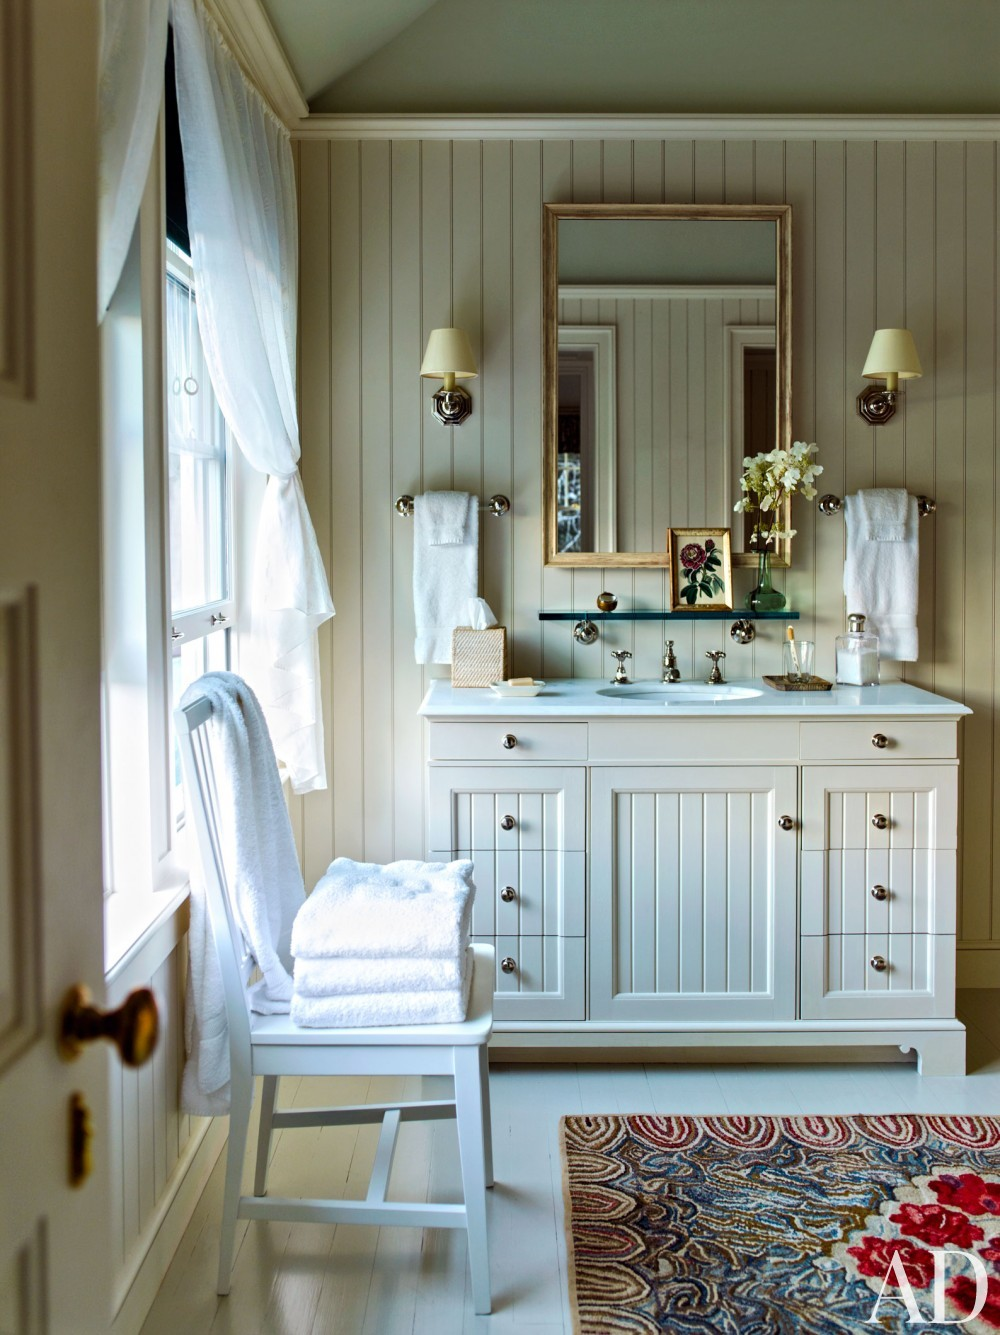 Traditional Bathroom and G. P. Schafer Architect in Lake Placid, NY